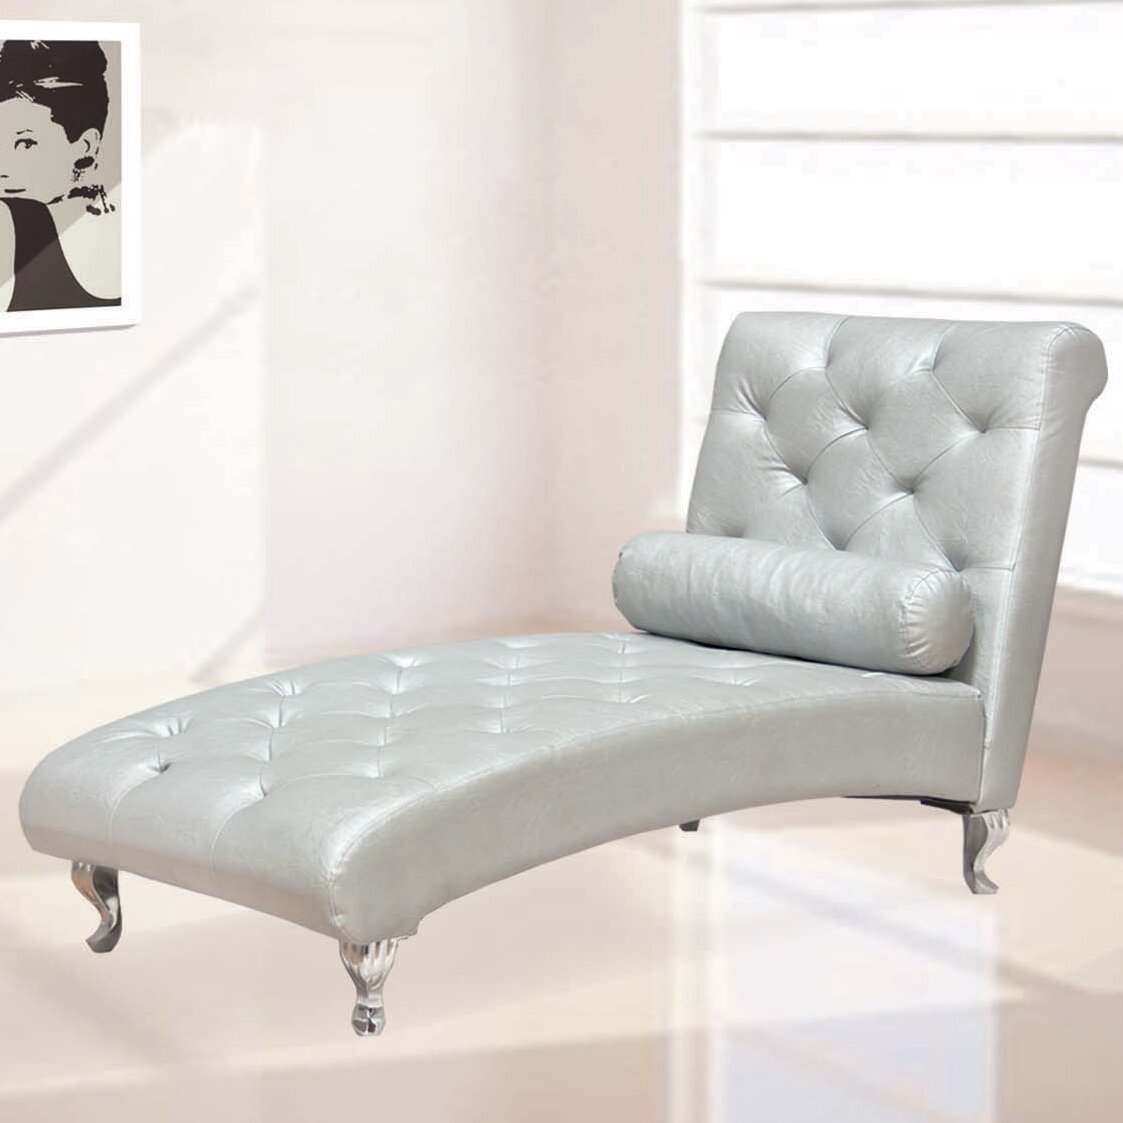 Bestmasterfurniture Modern Chaise Lounge Reviews Wayfair